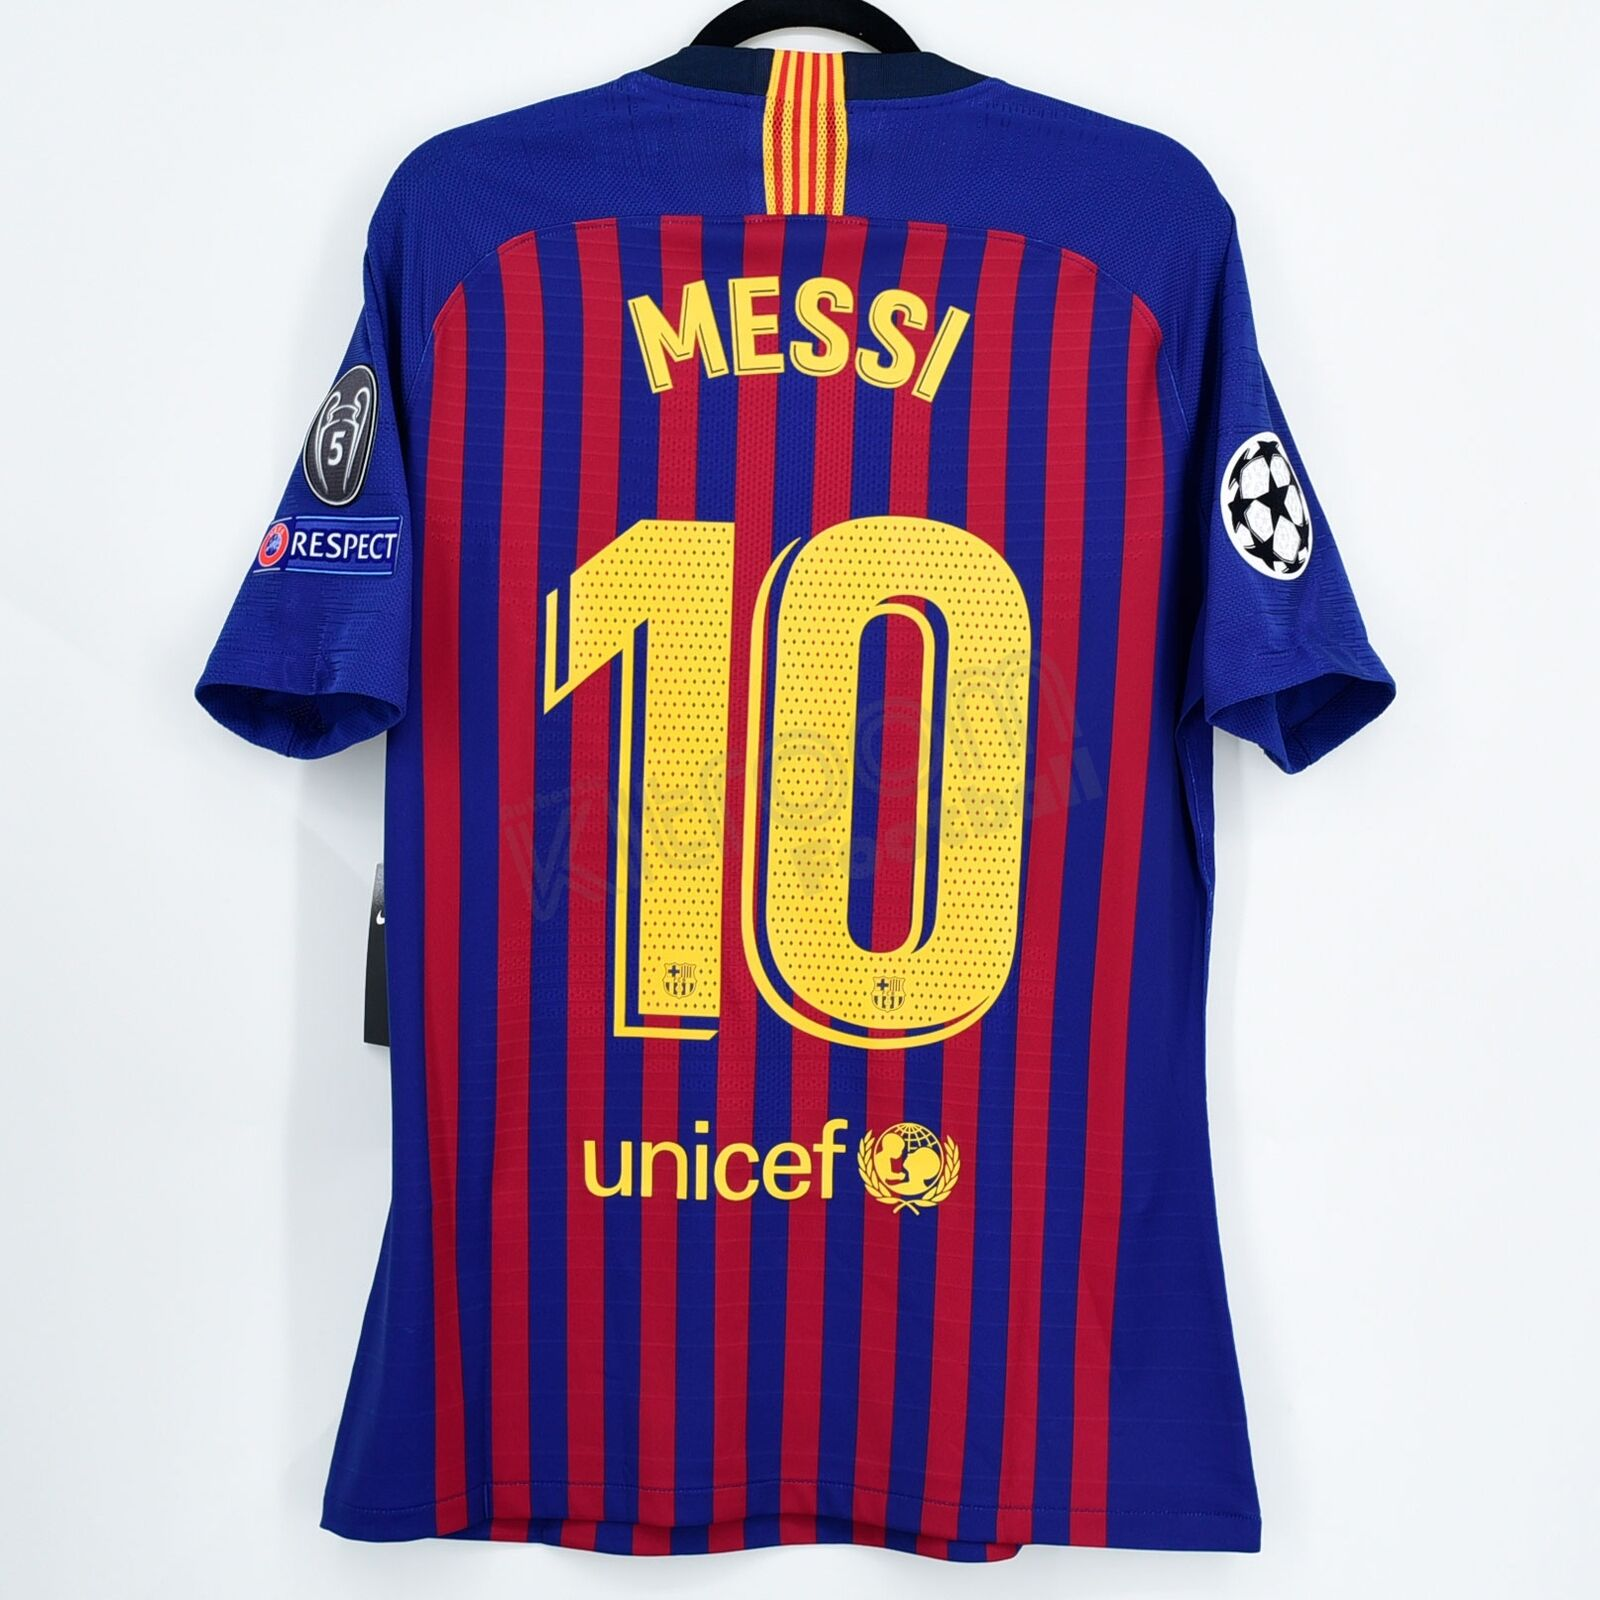 201819 Barcelona Player Issue Home Shirt  10 MESSI Champions League M Jersey